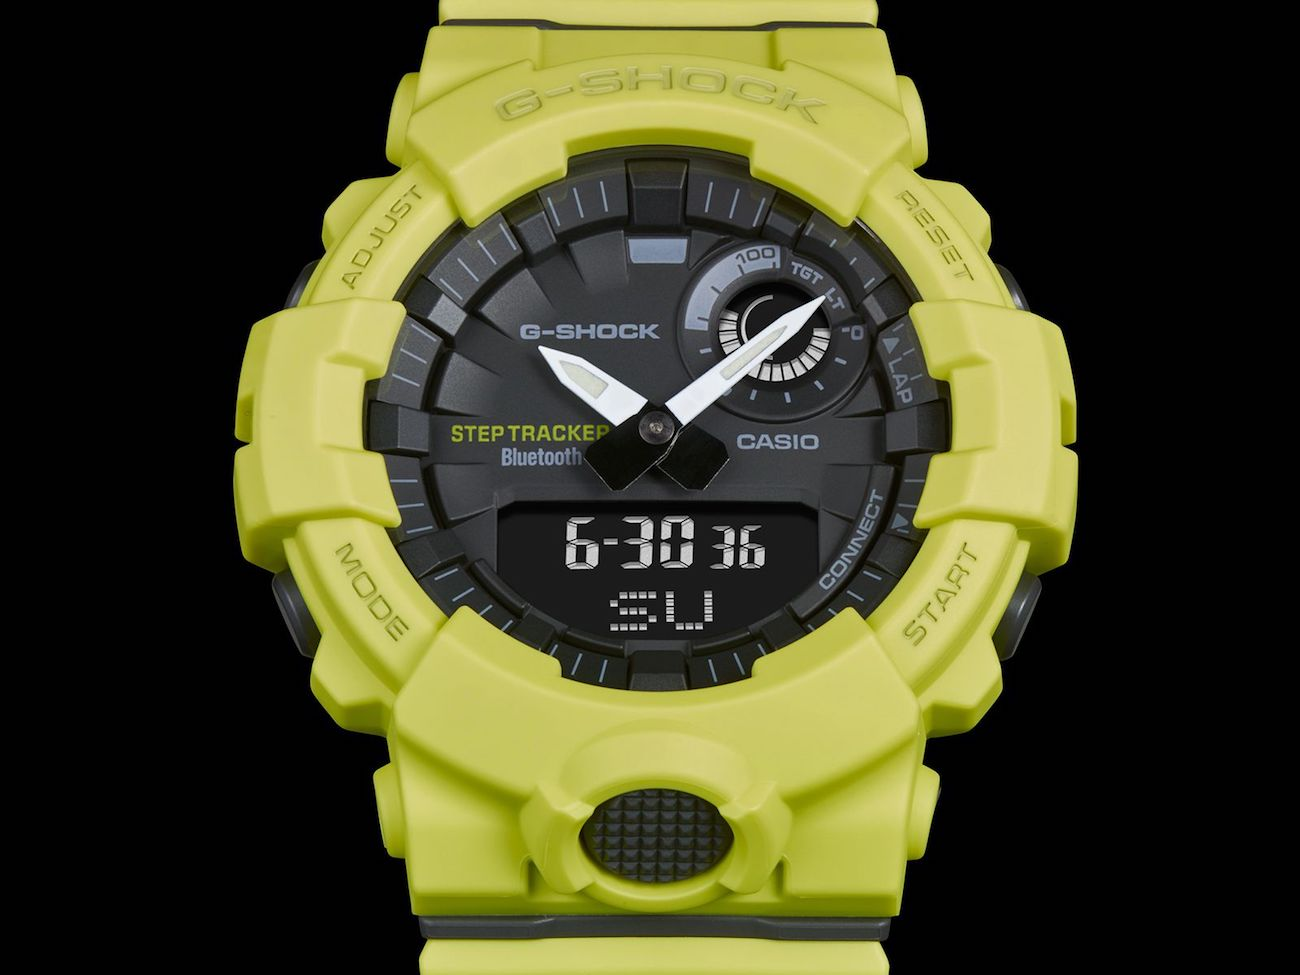 Casio G-Shock G-Squad GBA-800 Shock Resistant Watch